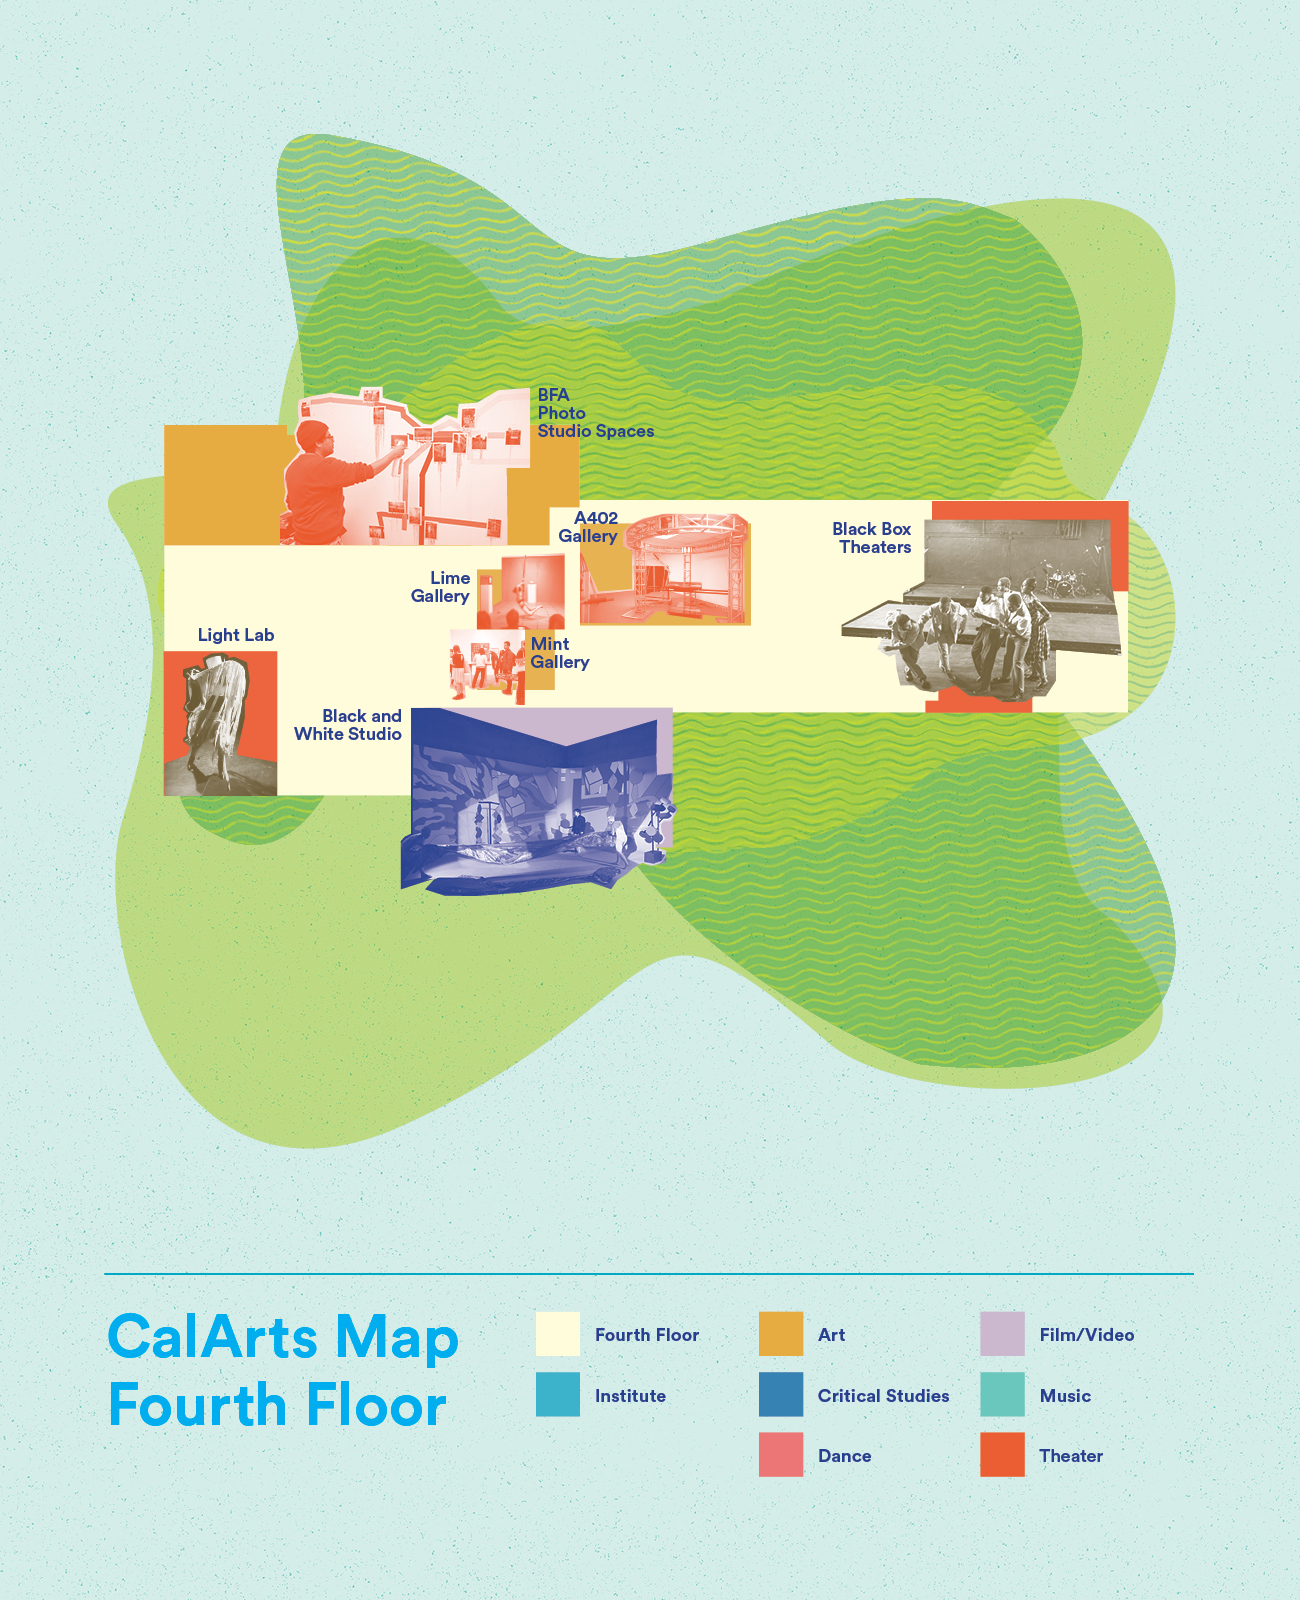 Map of CalArts Fourth Floor